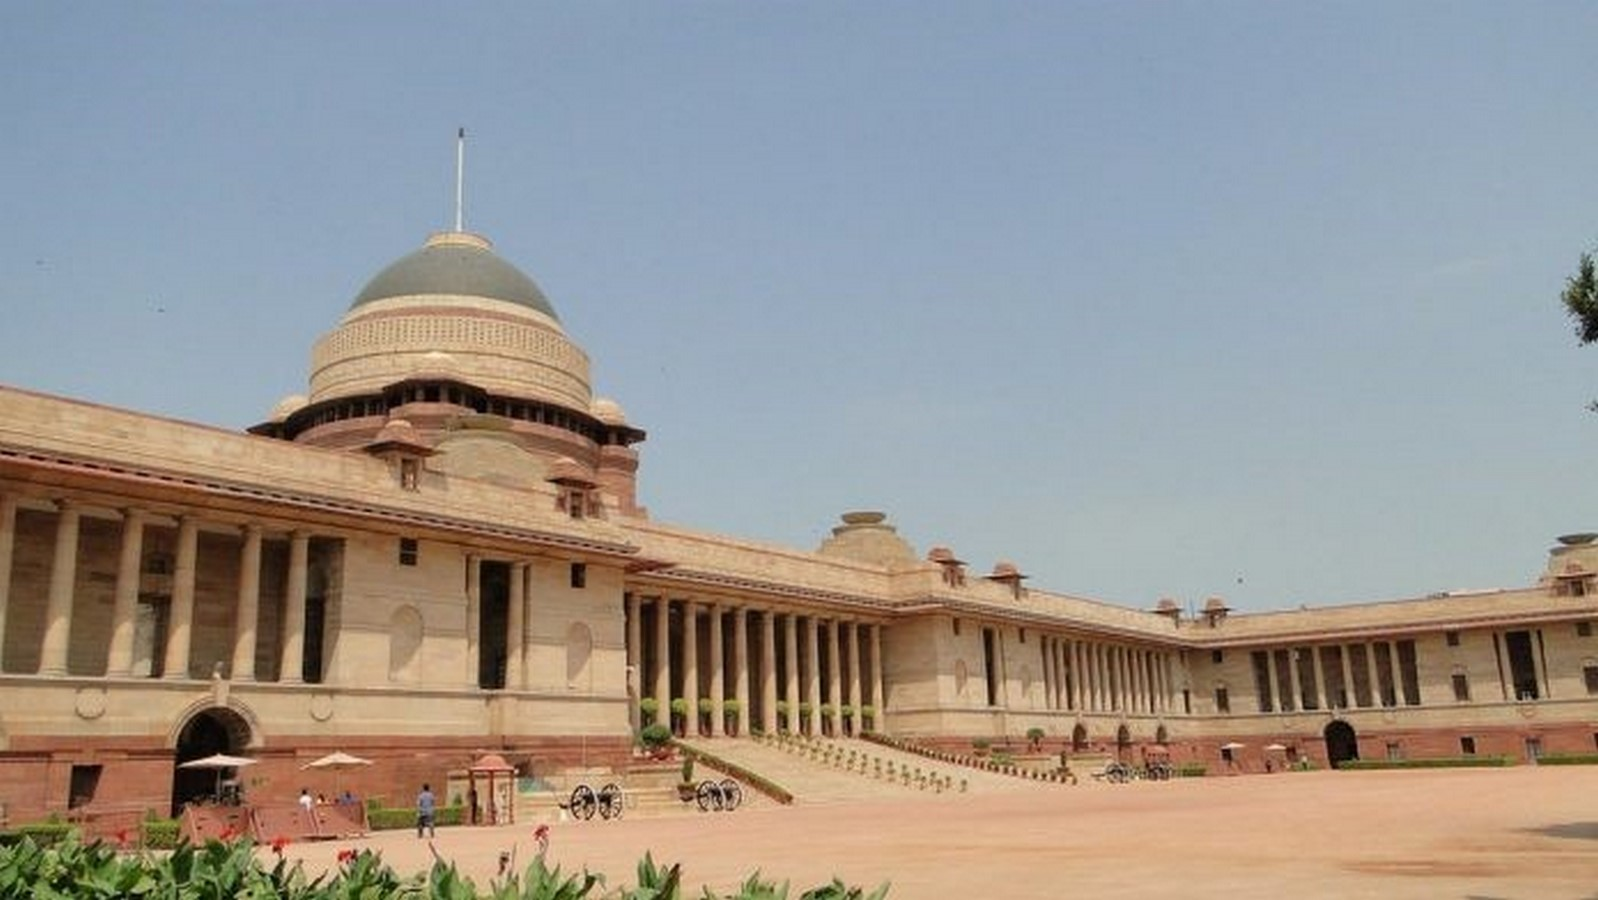 Revisiting the past: Indian independence and Architecture - Sheet3